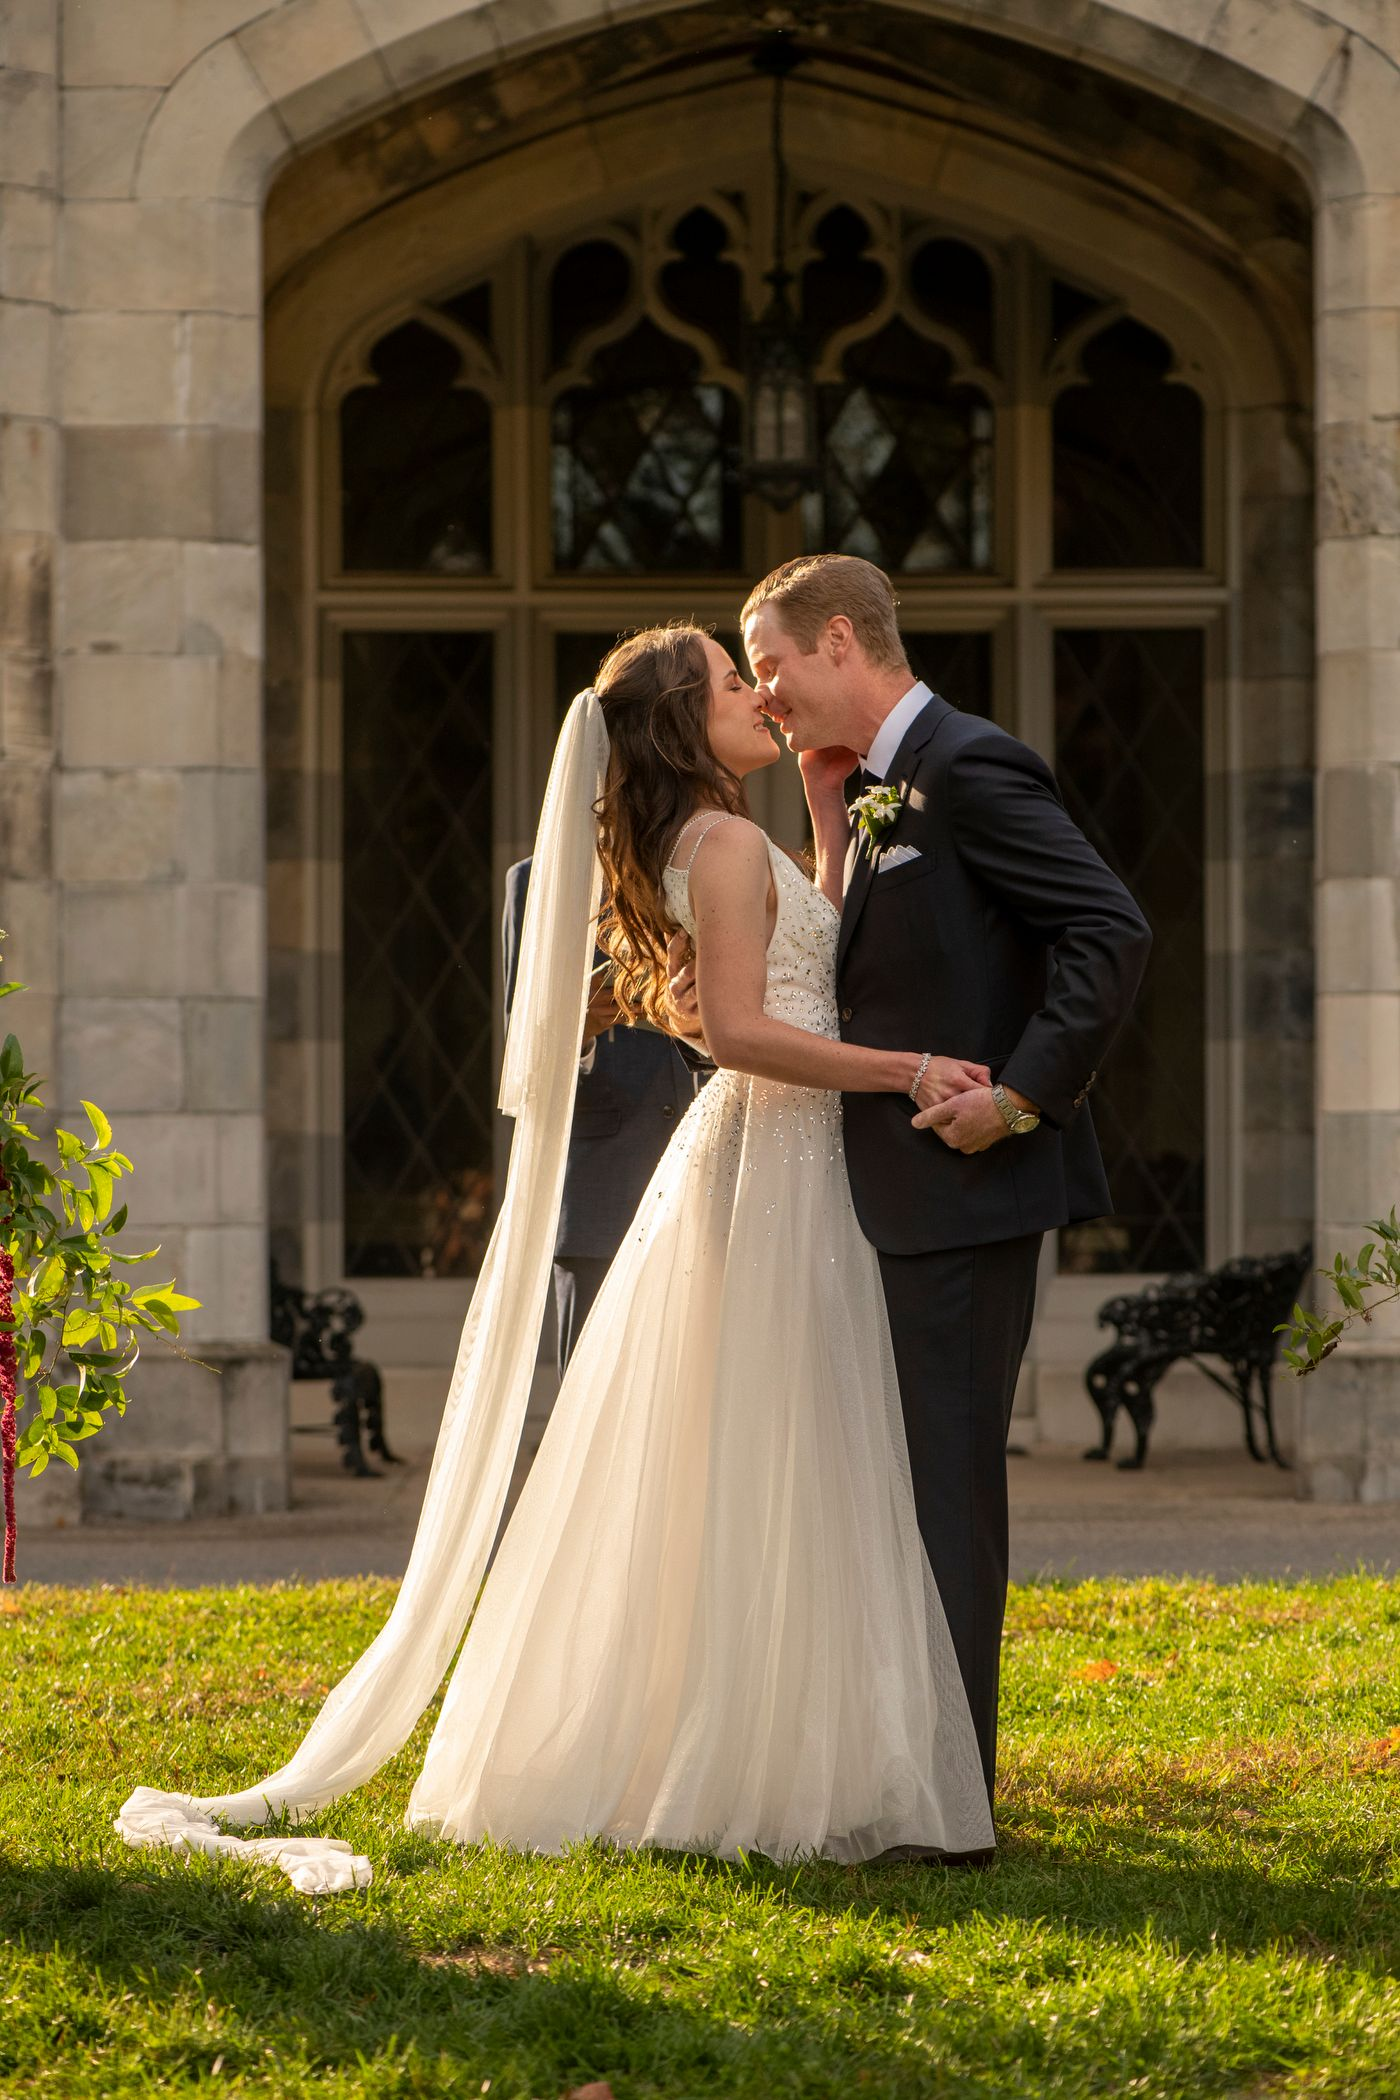 A Lyndhurst Wedding Kiss In The Time of Covid